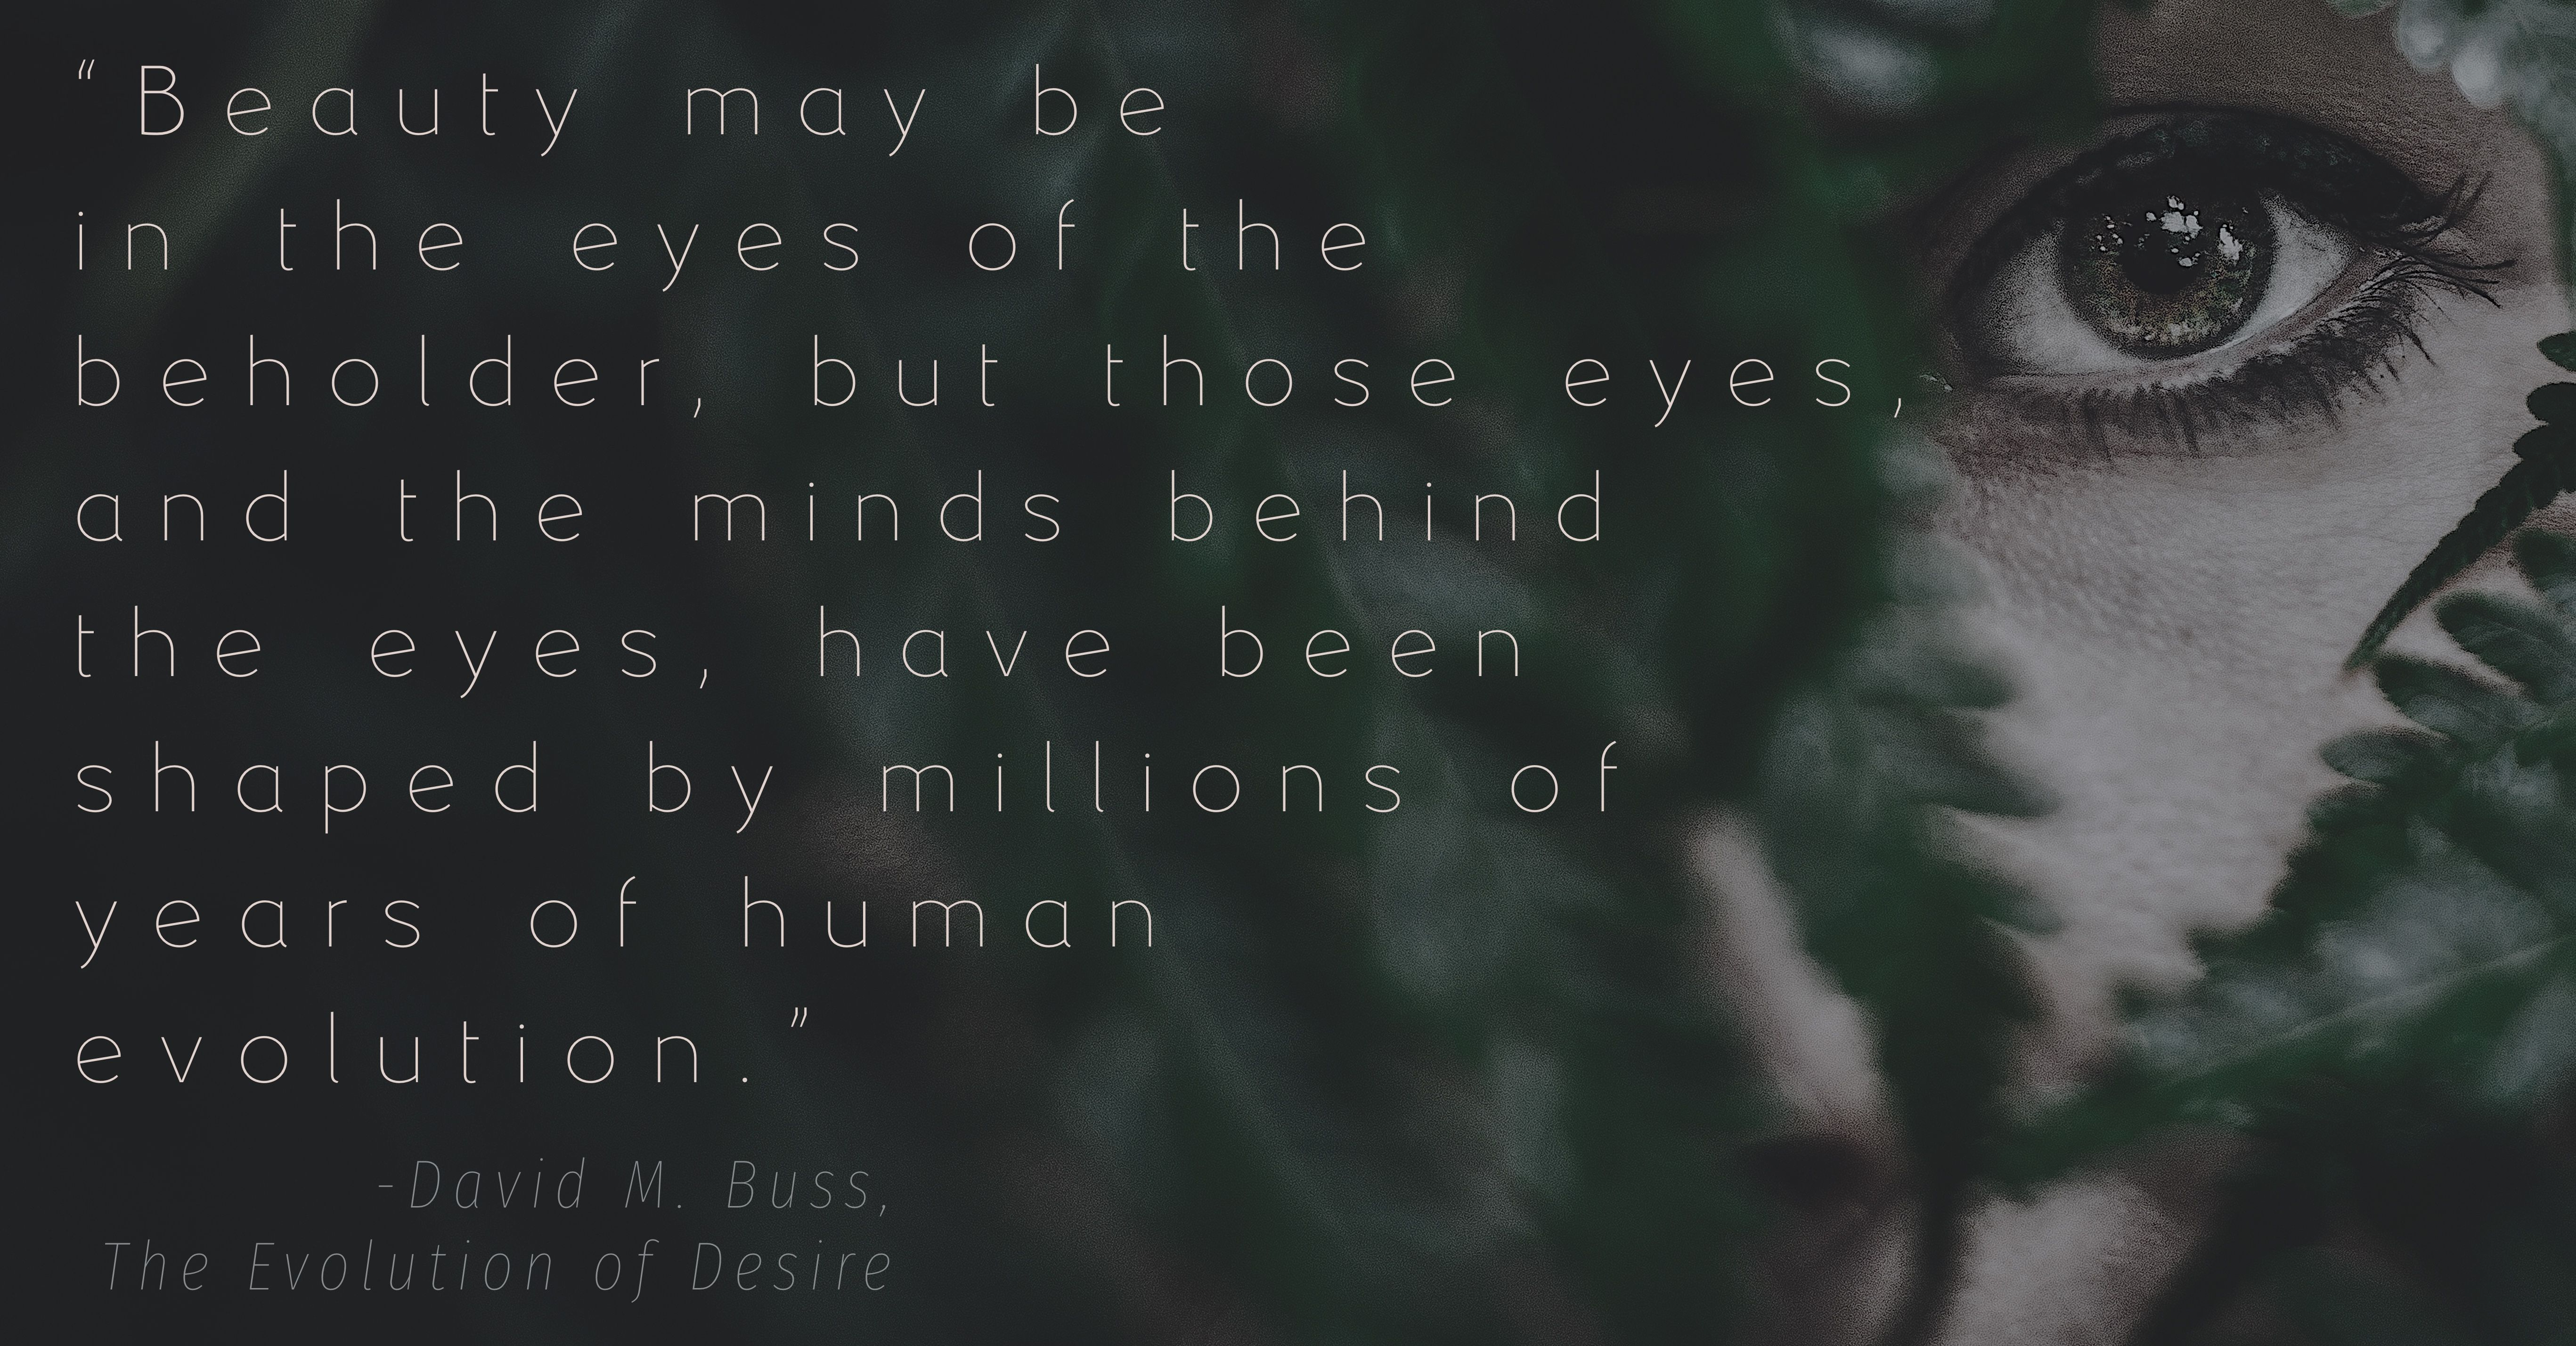 Beauty Is In The Eyes Of The Beholder Psychology Quotes Book Quotes Beauty Quotes